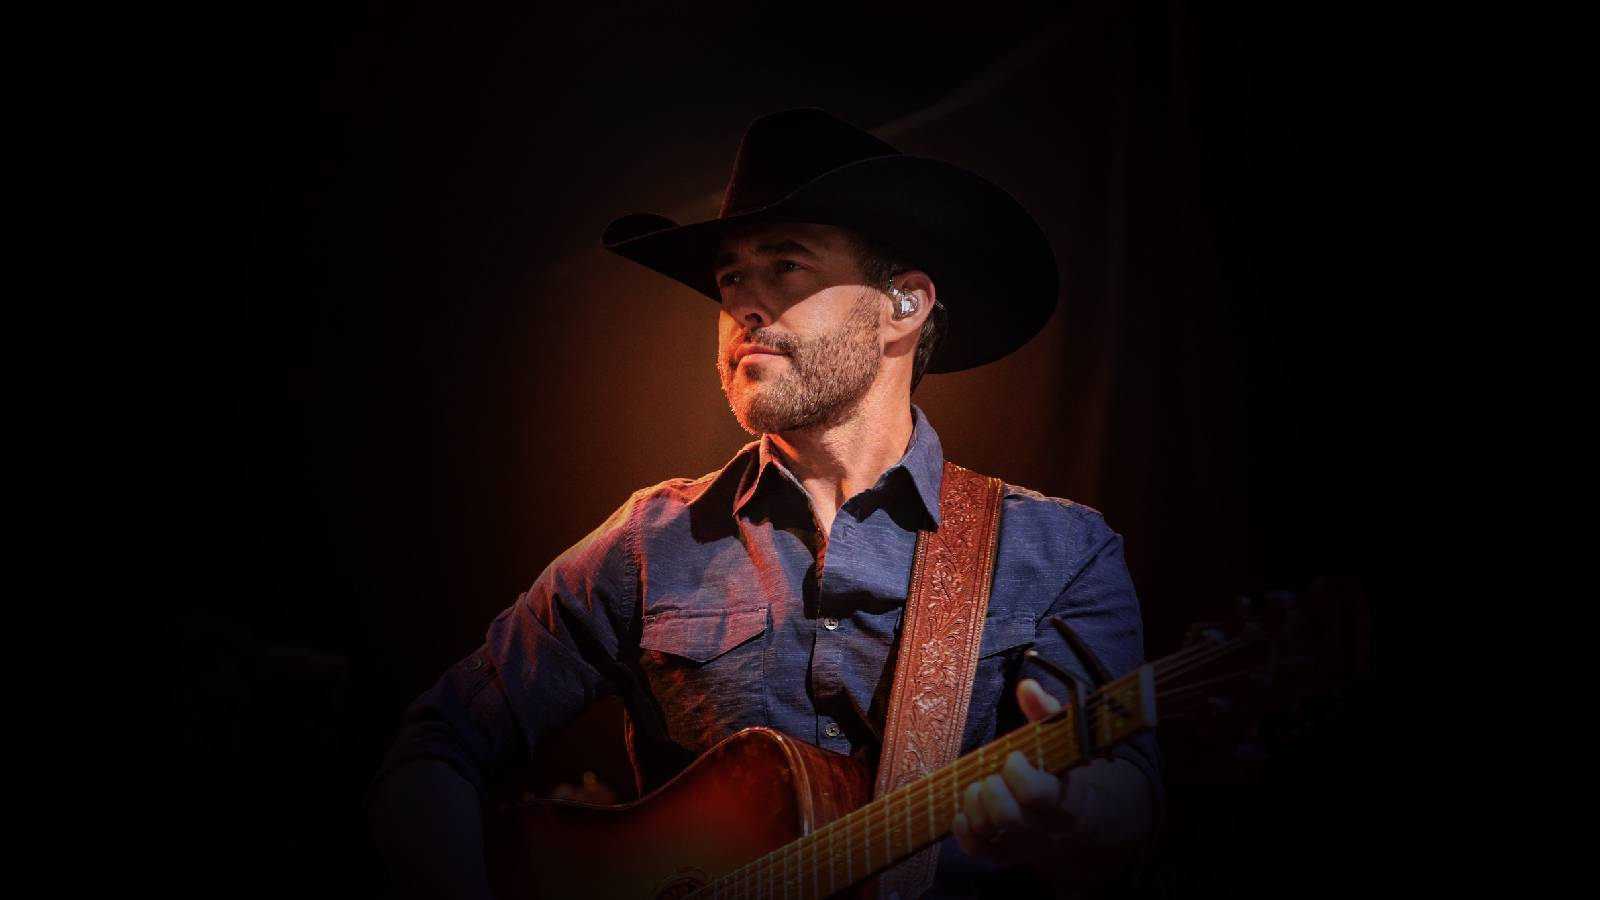 Aaron Watson (Rescheduled from 3/19/2020, 6/5/2020)